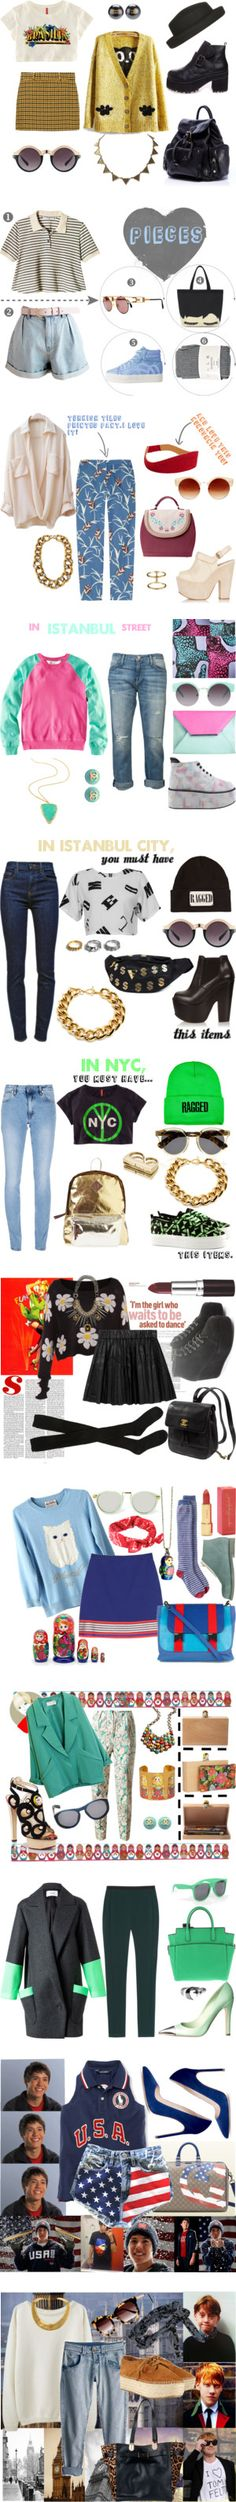 """""""cool stuff"""" by callmeends ❤ liked on Polyvore"""